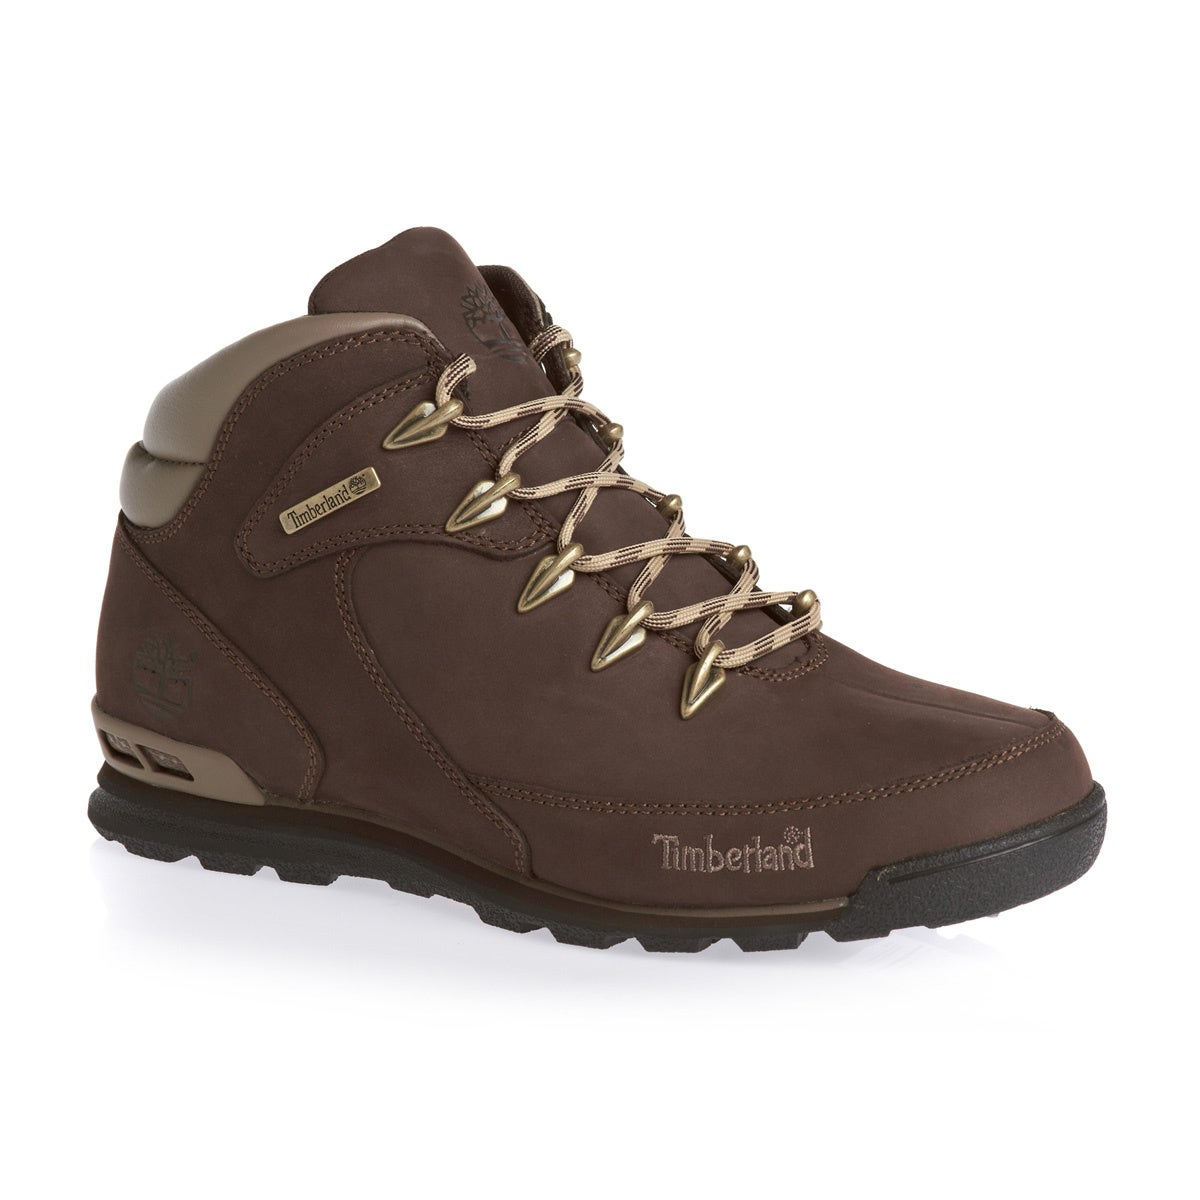 1aaddb6d073 Timberland Ek Newmarket Euro Rock Hiker Walking Boots available from  Surfdome